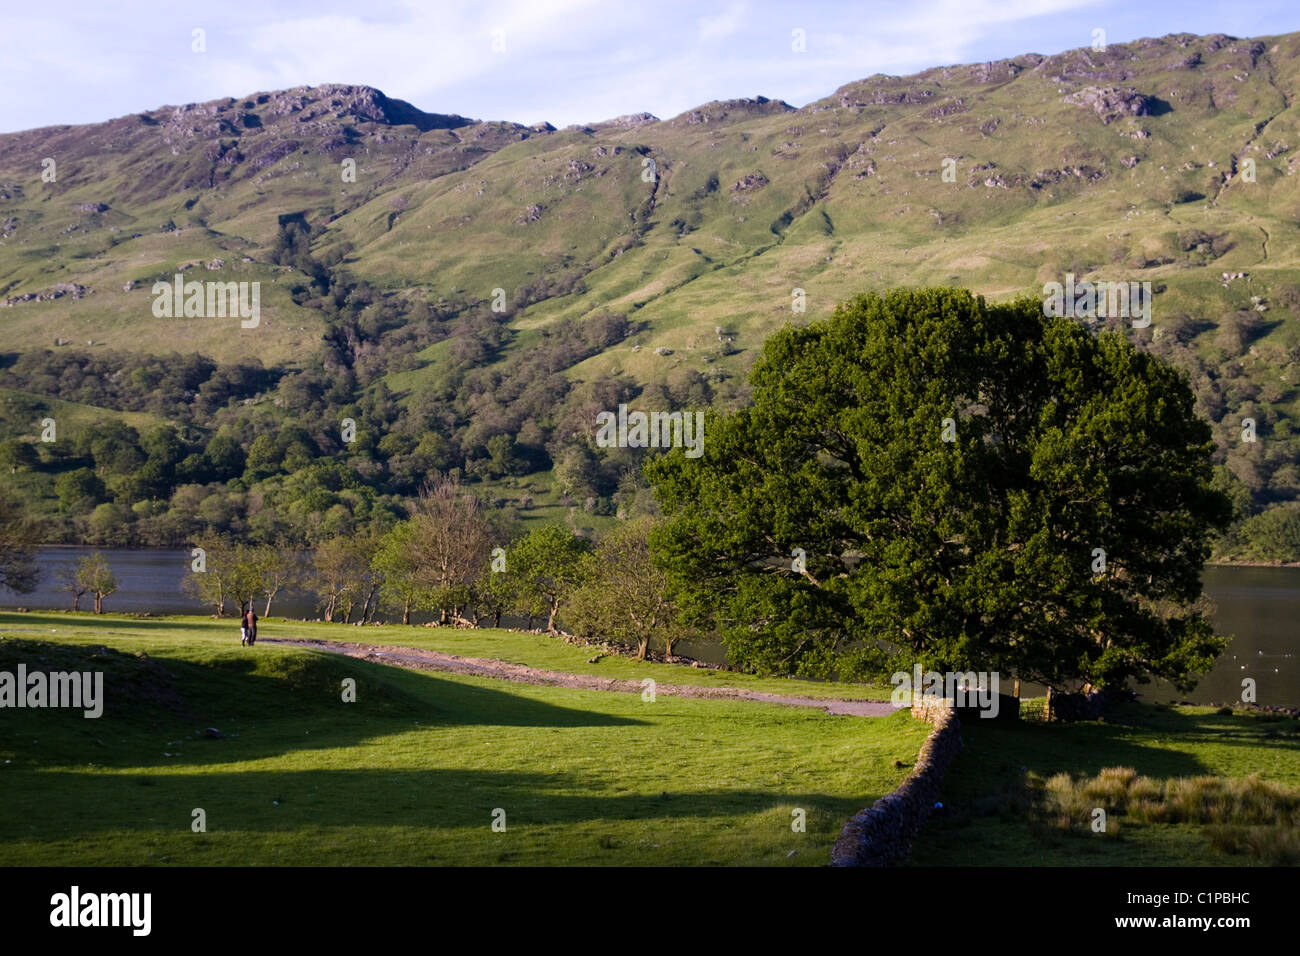 Scotland, Loch Lomond and Trossachs, oak tree and green mountains in countryside - Stock Image